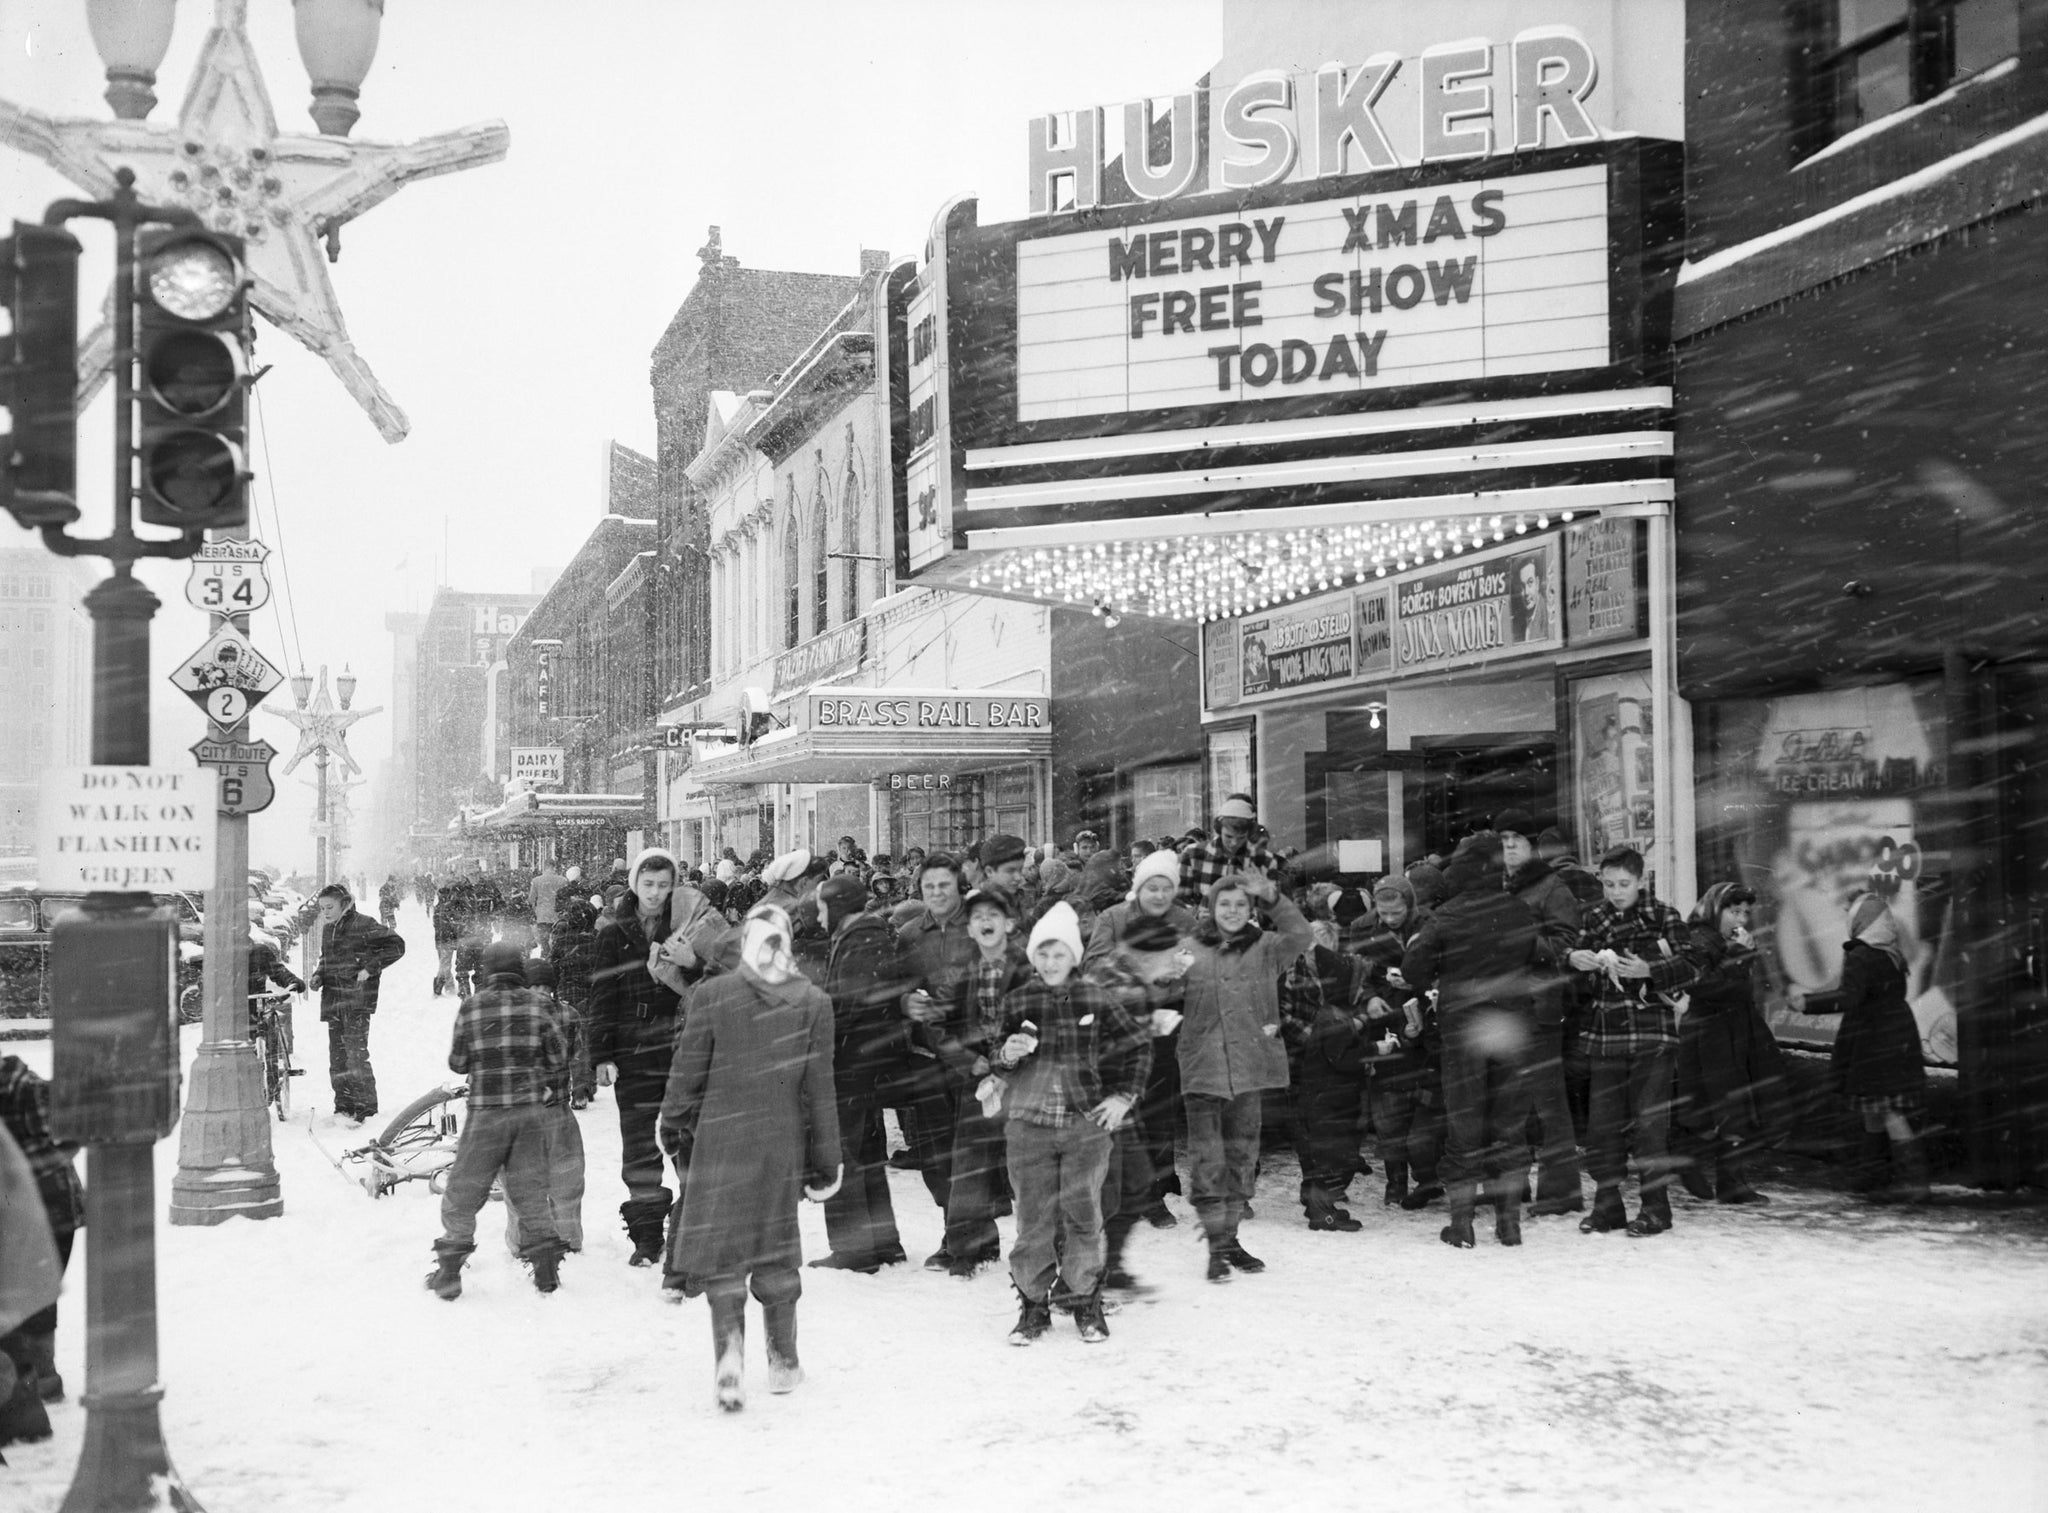 A group of children in front of the Husker Theater, located at 1444 O Street, on Christmas Eve, 1948. -- NEBRASKA STATE HISTORICAL SOCIETY / #RG2183.PH001948-001224